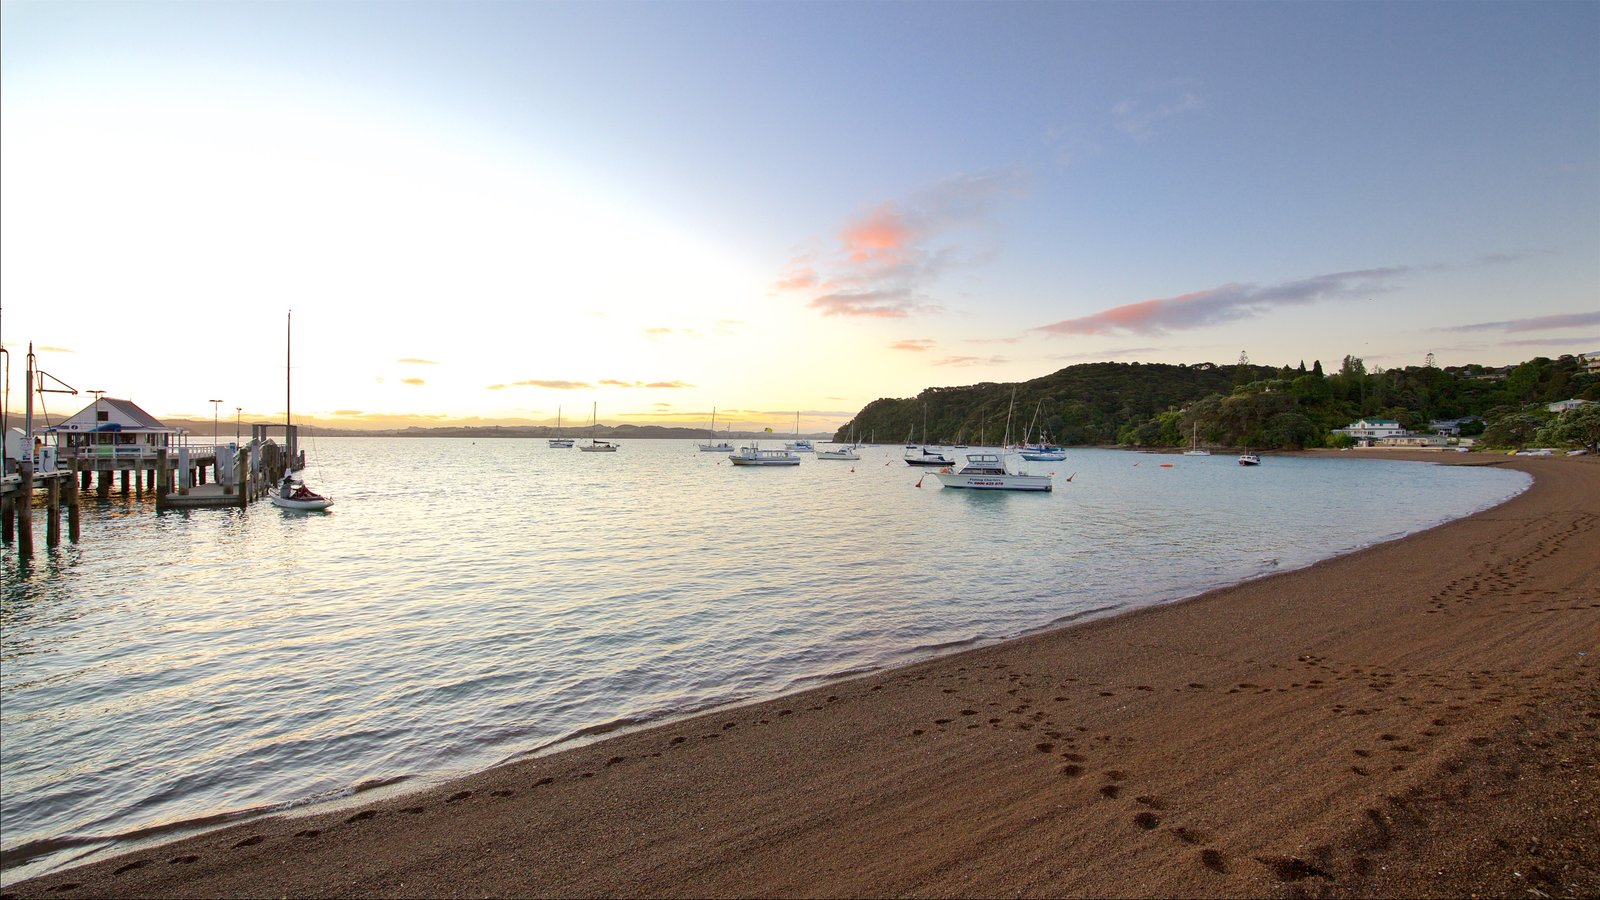 Russell Beach which includes a pebble beach, a bay or harbor and a sunset